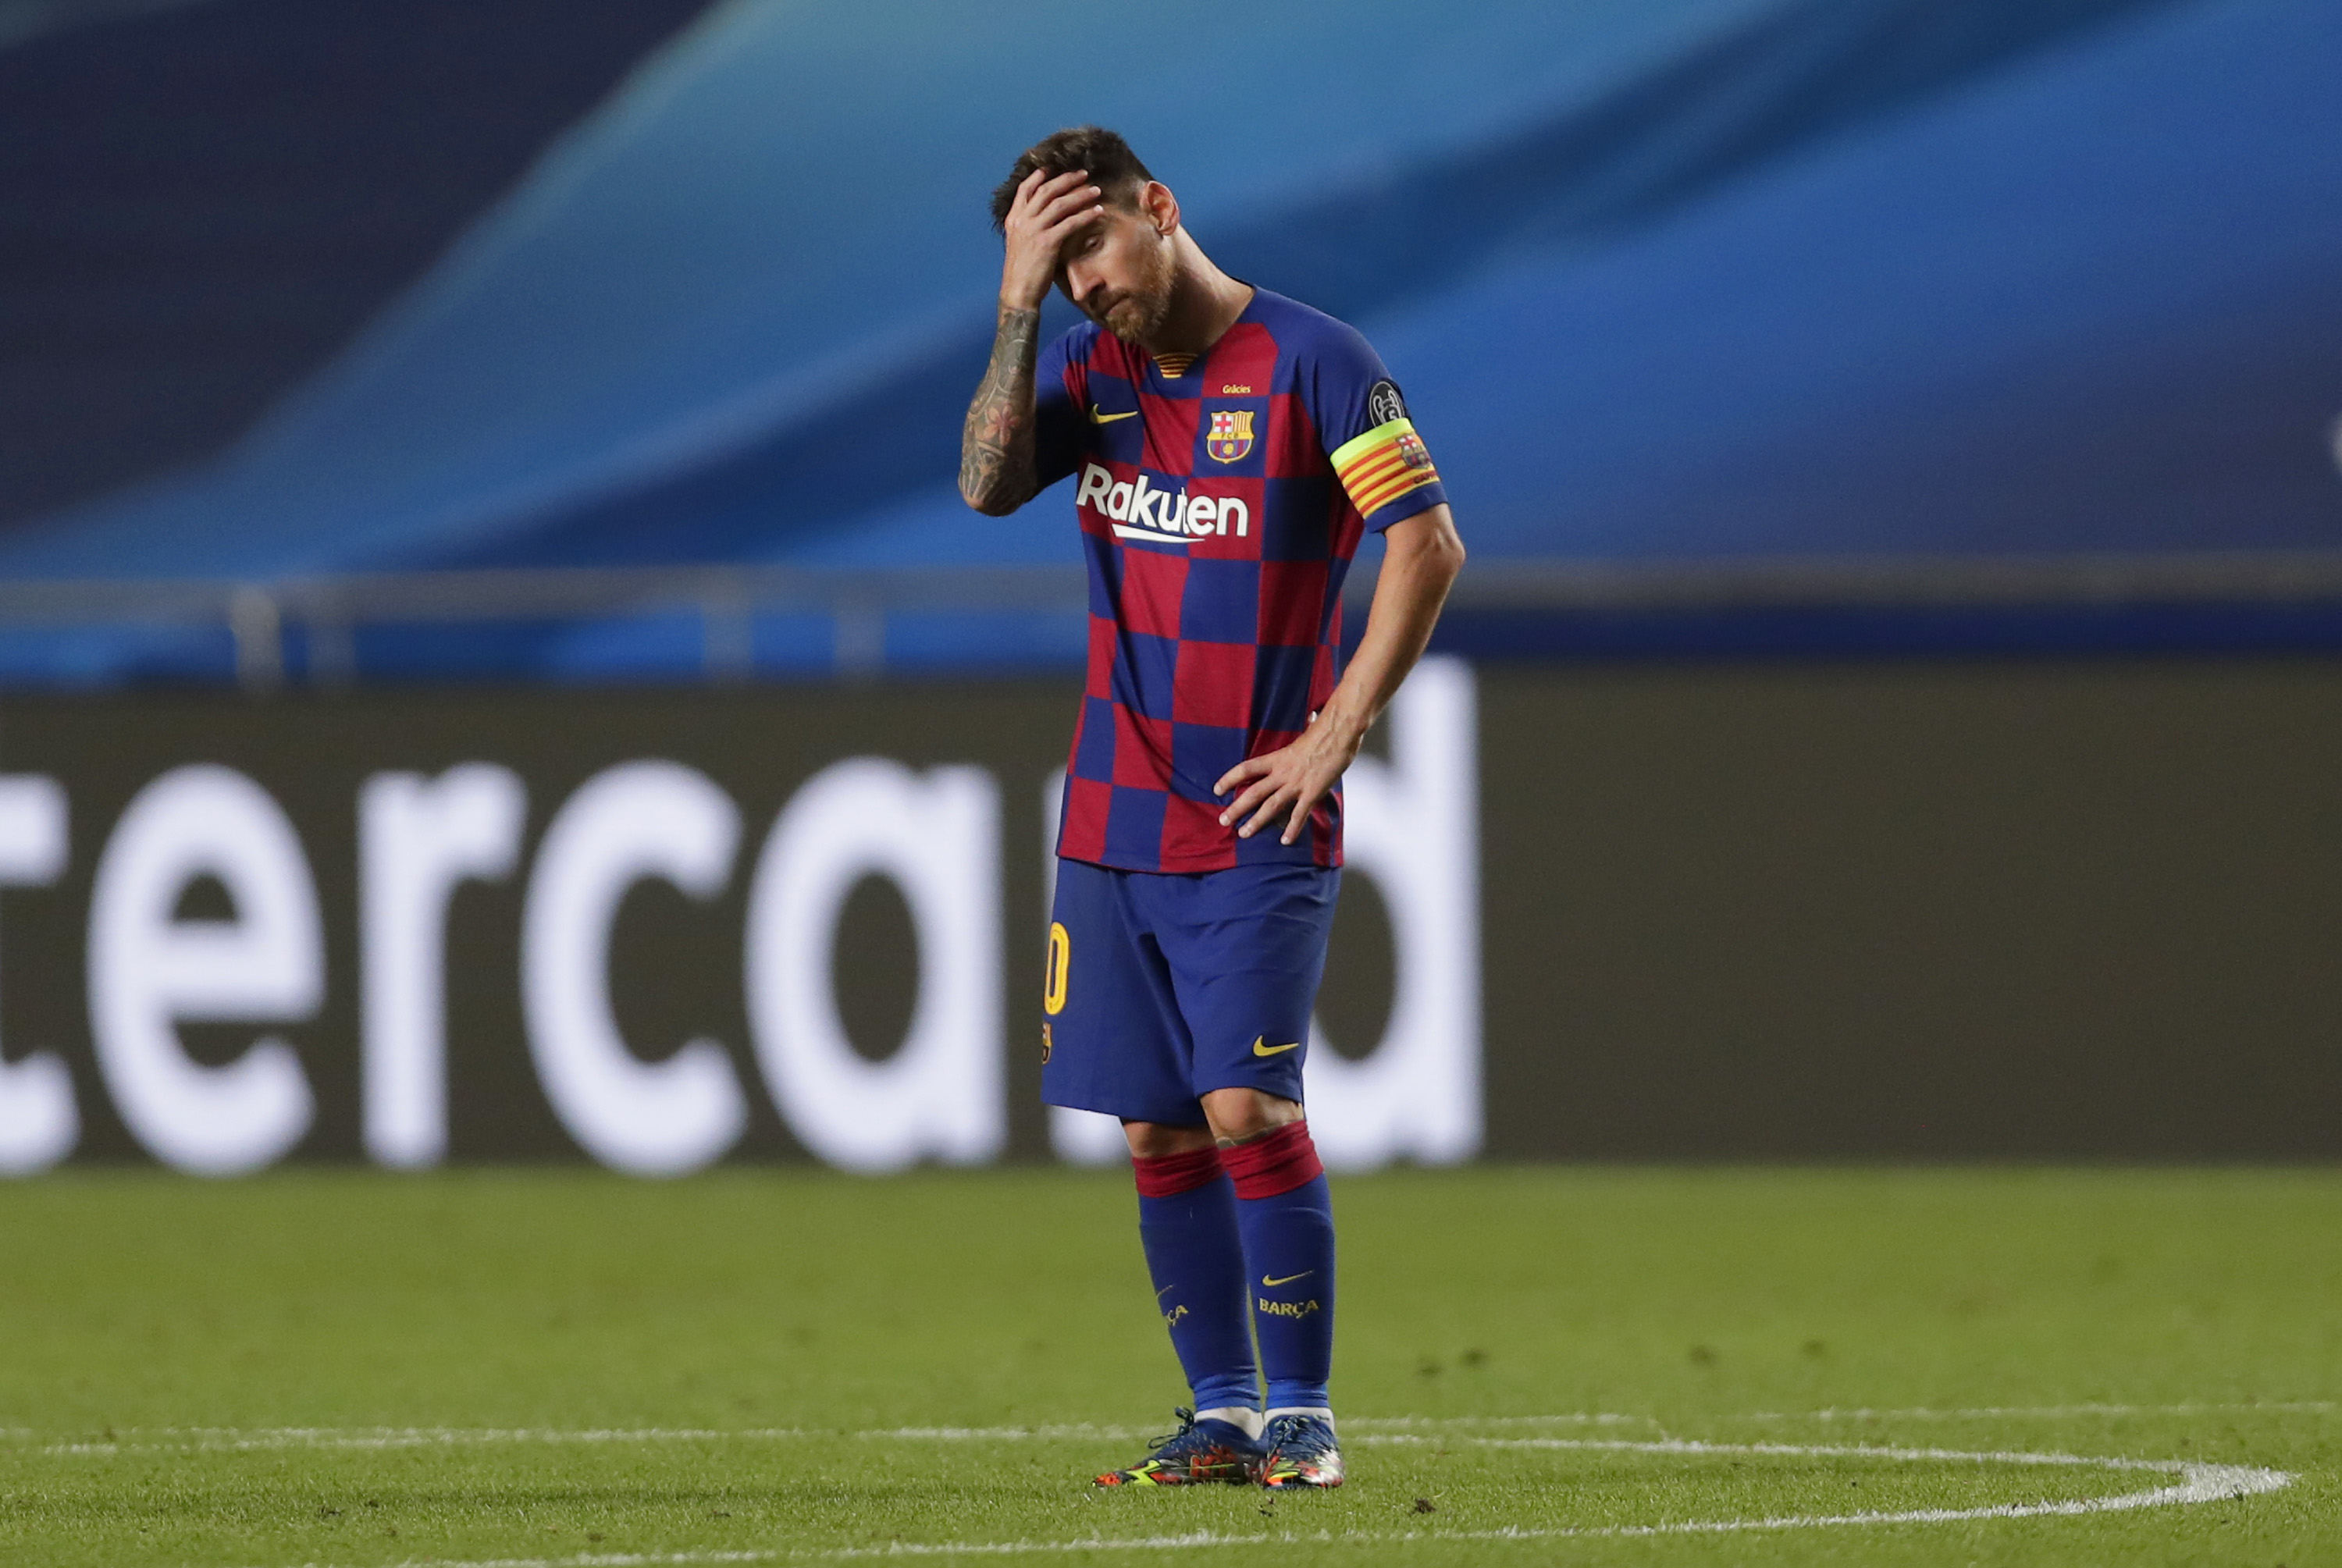 'The club needs changes' Changes on the horizon for Barcelona following Champions League humiliation